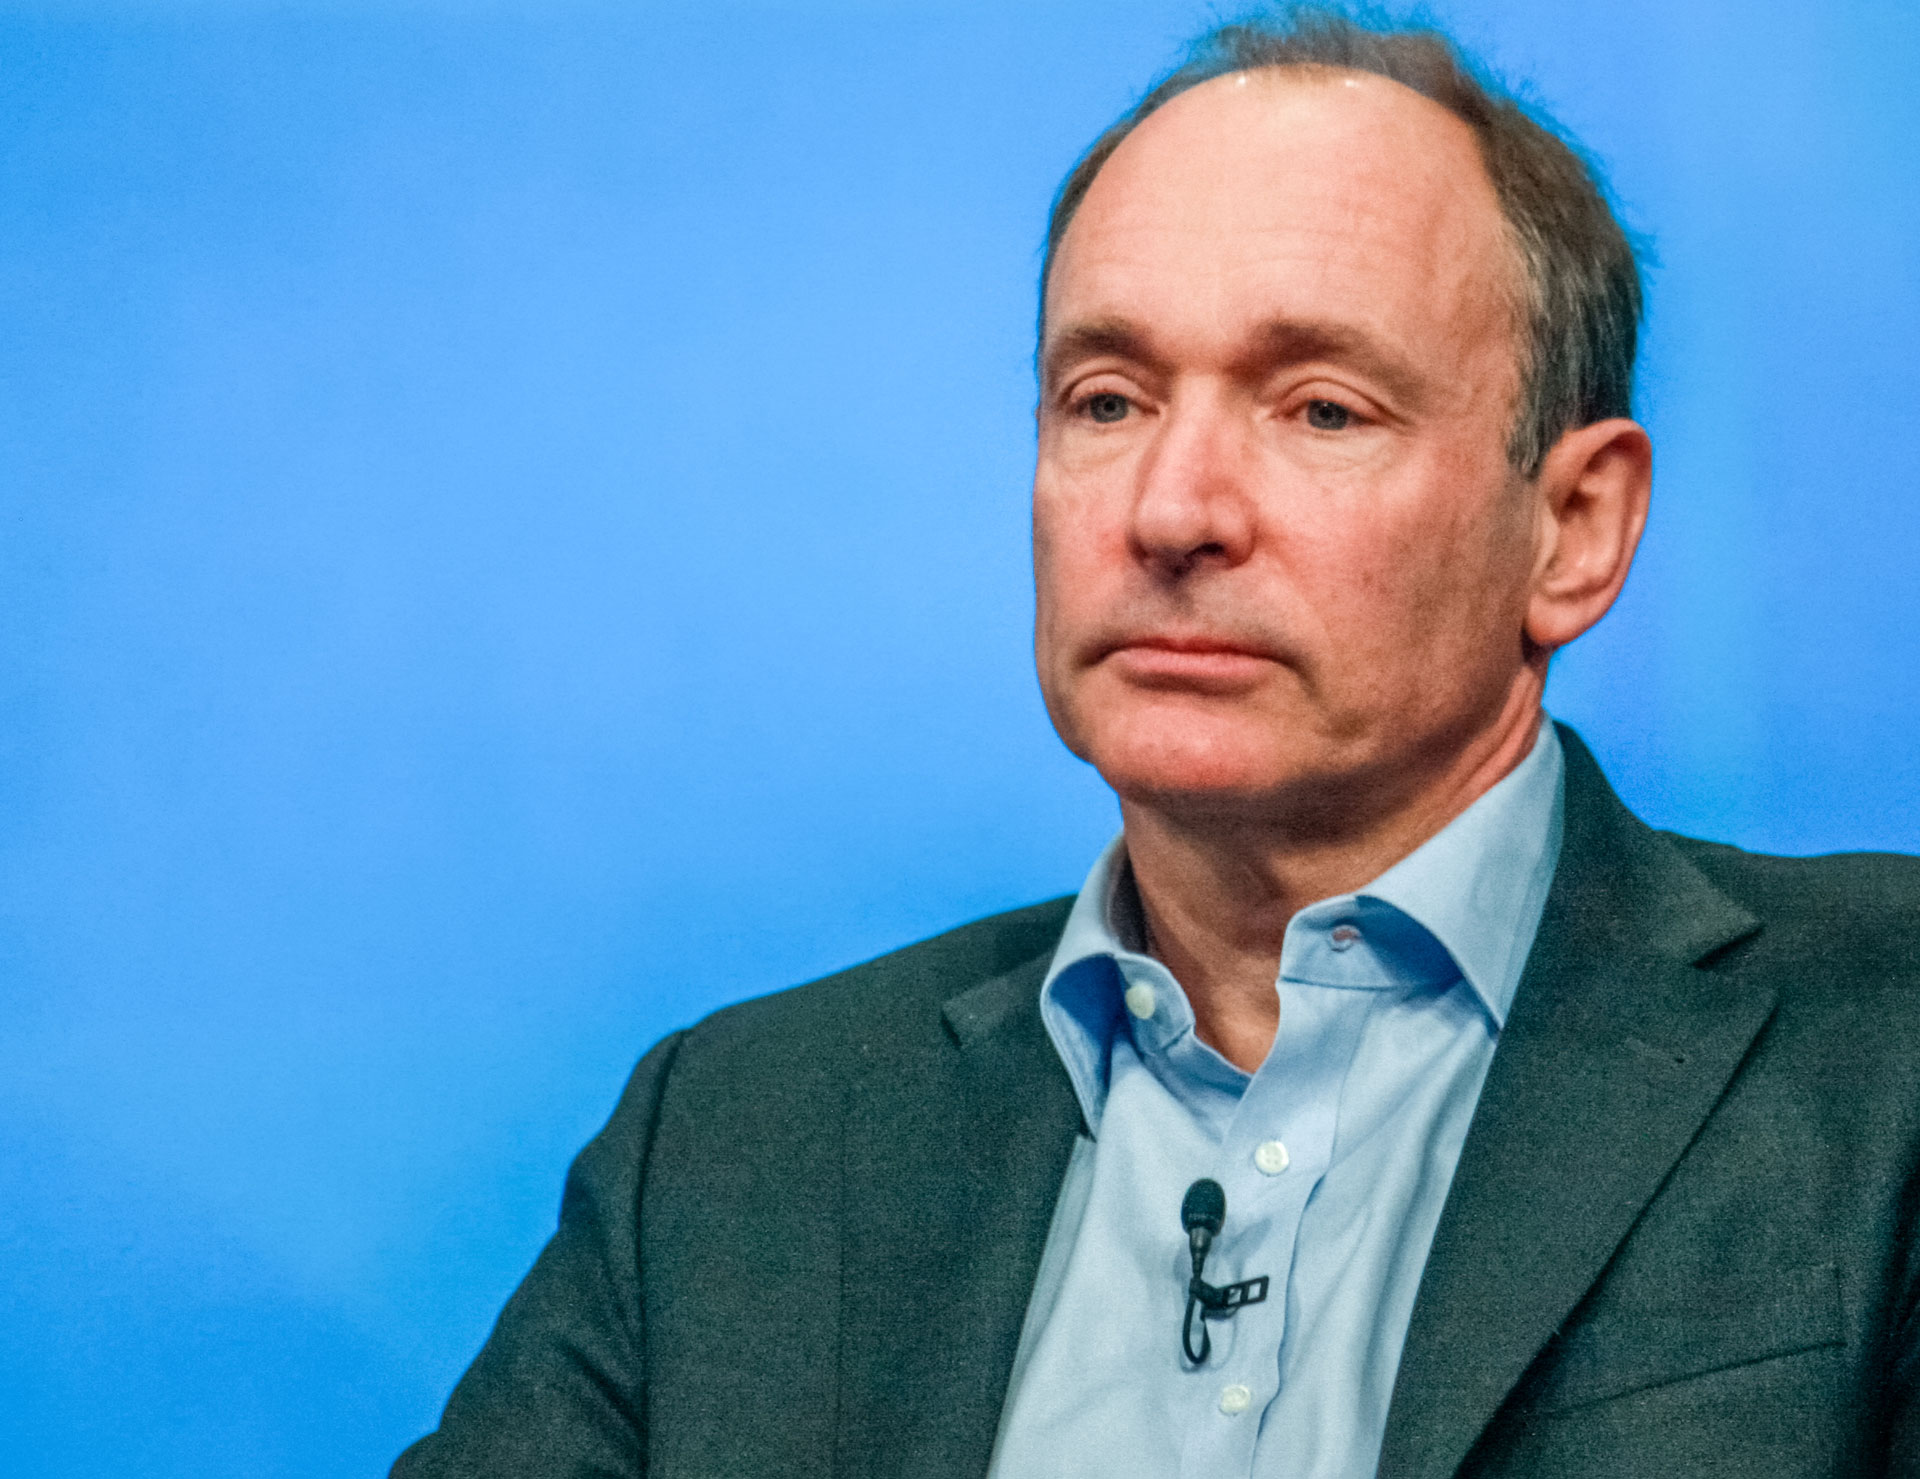 30 years after Tim Berners-Lee created the web, is it too late to fix it?